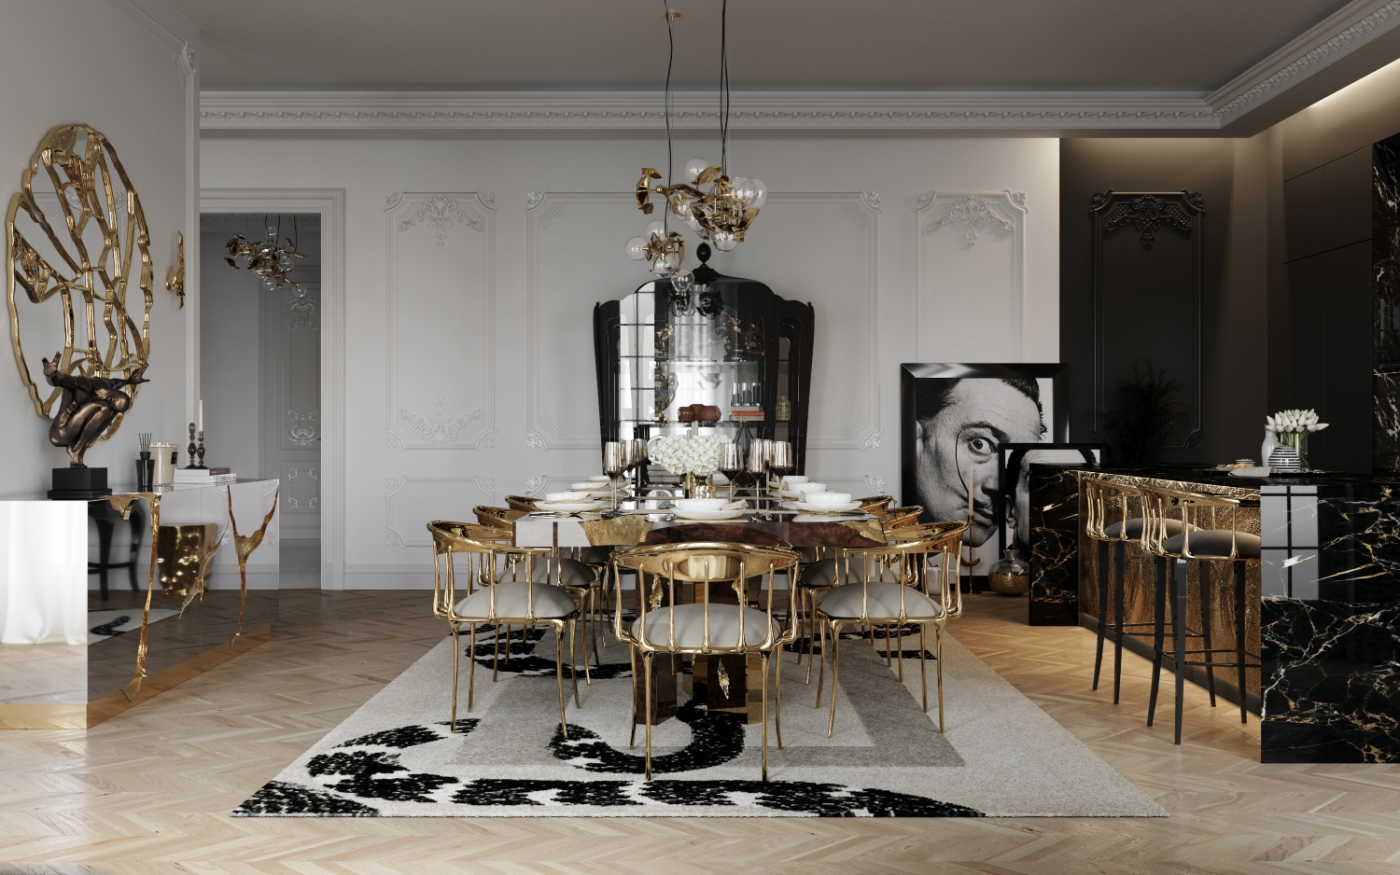 luxury dining room Unravel A Luxury Dining Room Inside A Multi-Million Dollar Penthouse Unravel A Luxury Dining Room Inside A Multi Million Dollar Penthouse 2 1 1 1400x875